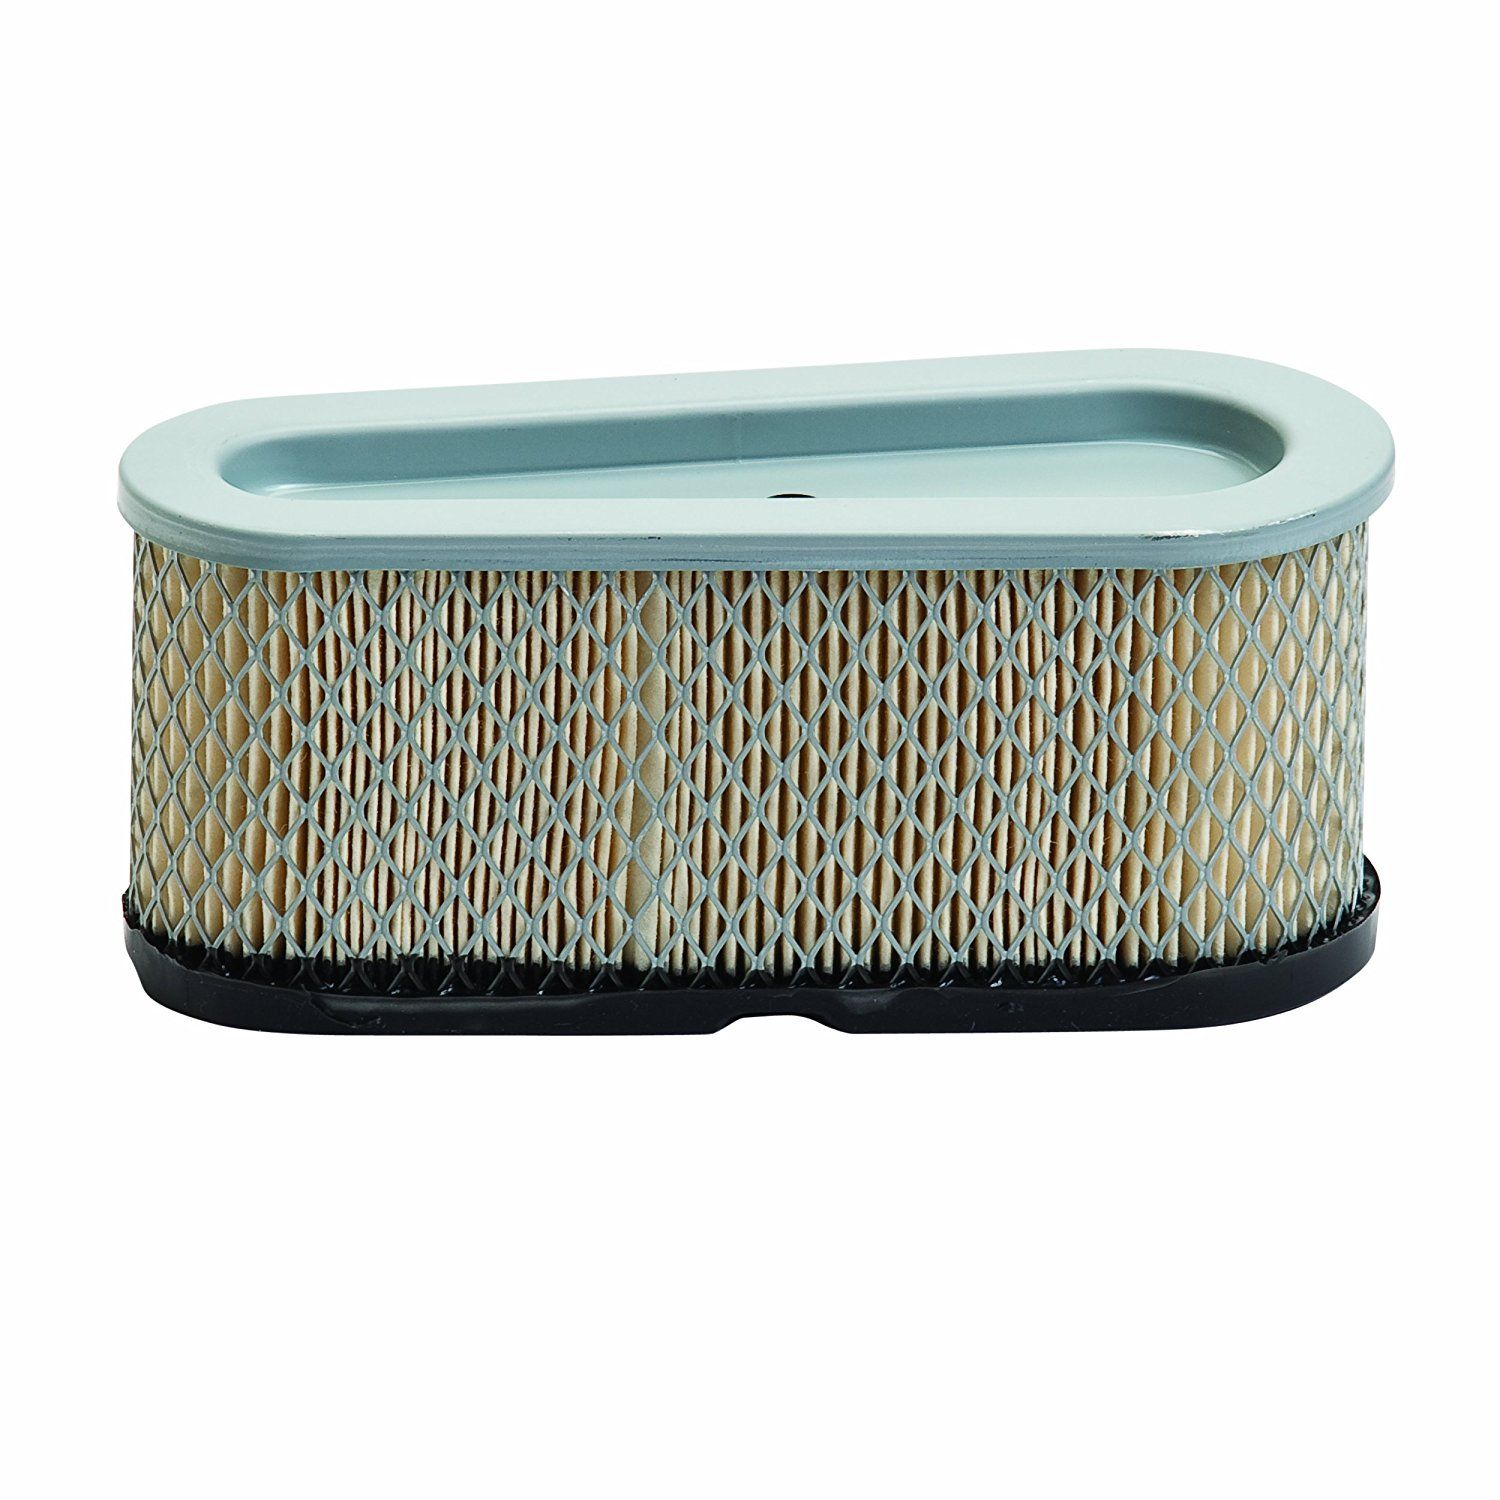 Oregon 30 049 paper air filter for briggs and stratton 493909 oregon 30 049 paper air filter for briggs and stratton 493909 496894 496894s solutioingenieria Image collections